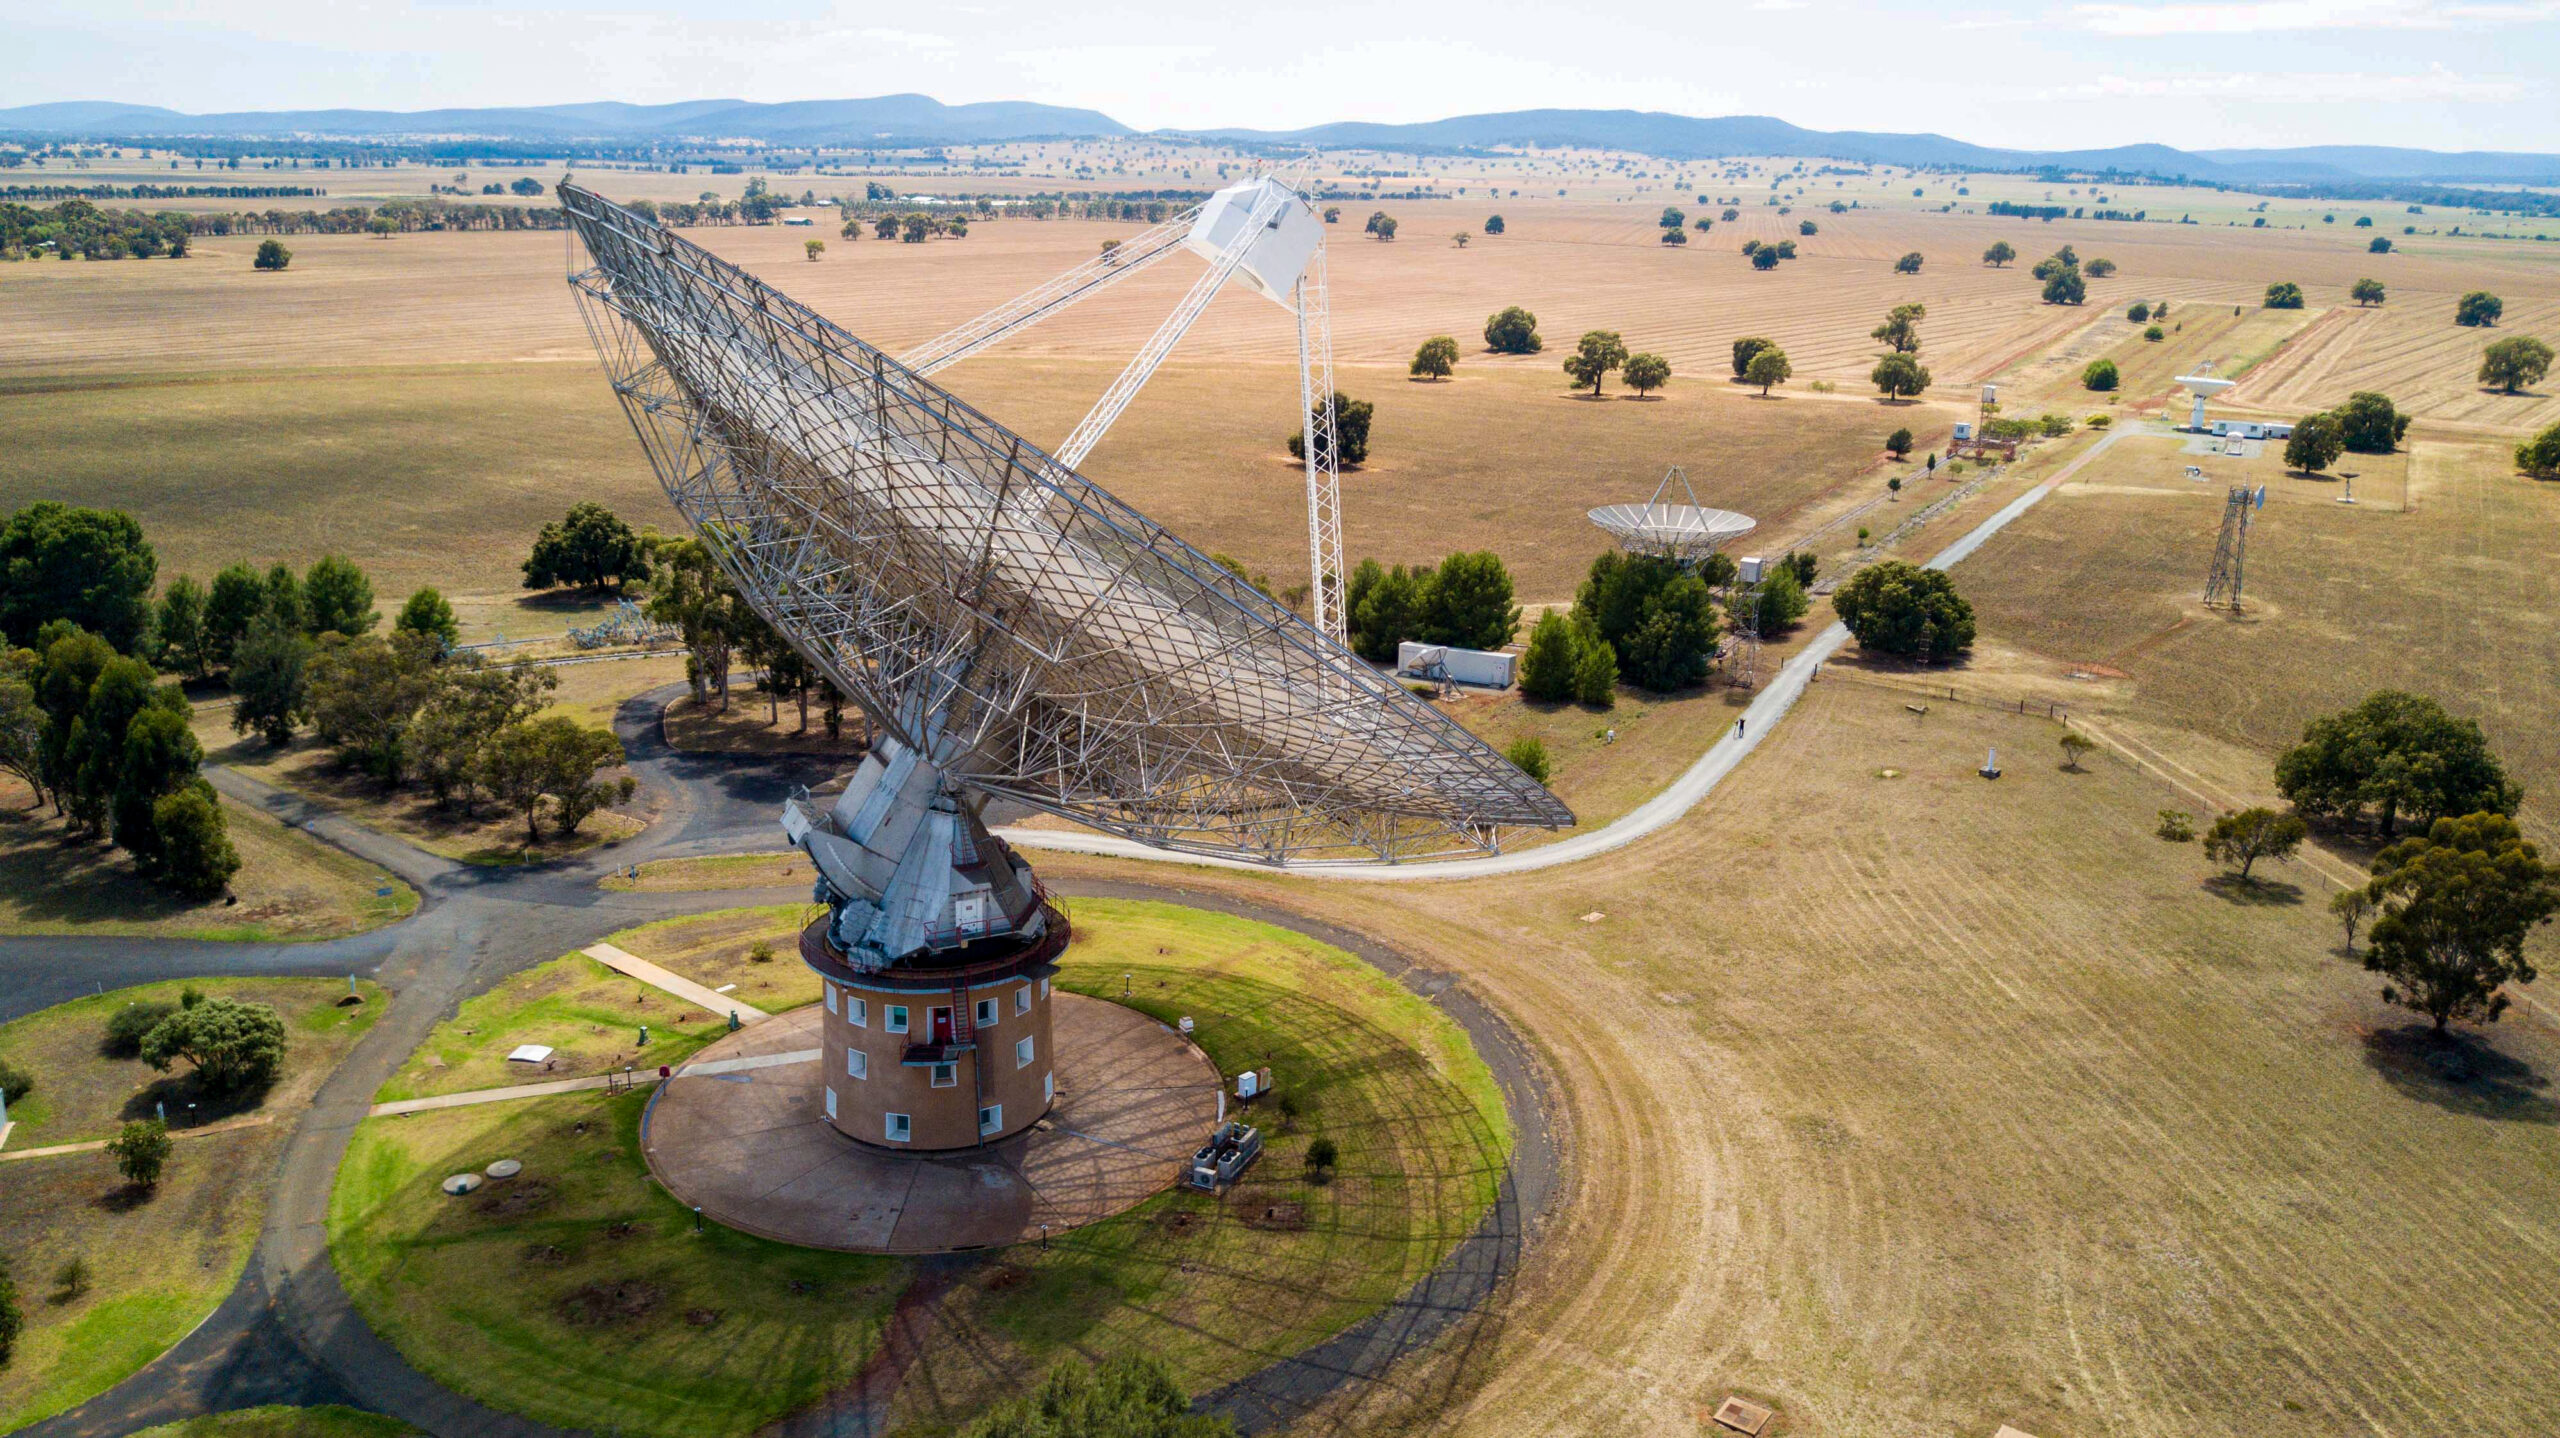 Dish To Play New Role In Moon Exploration